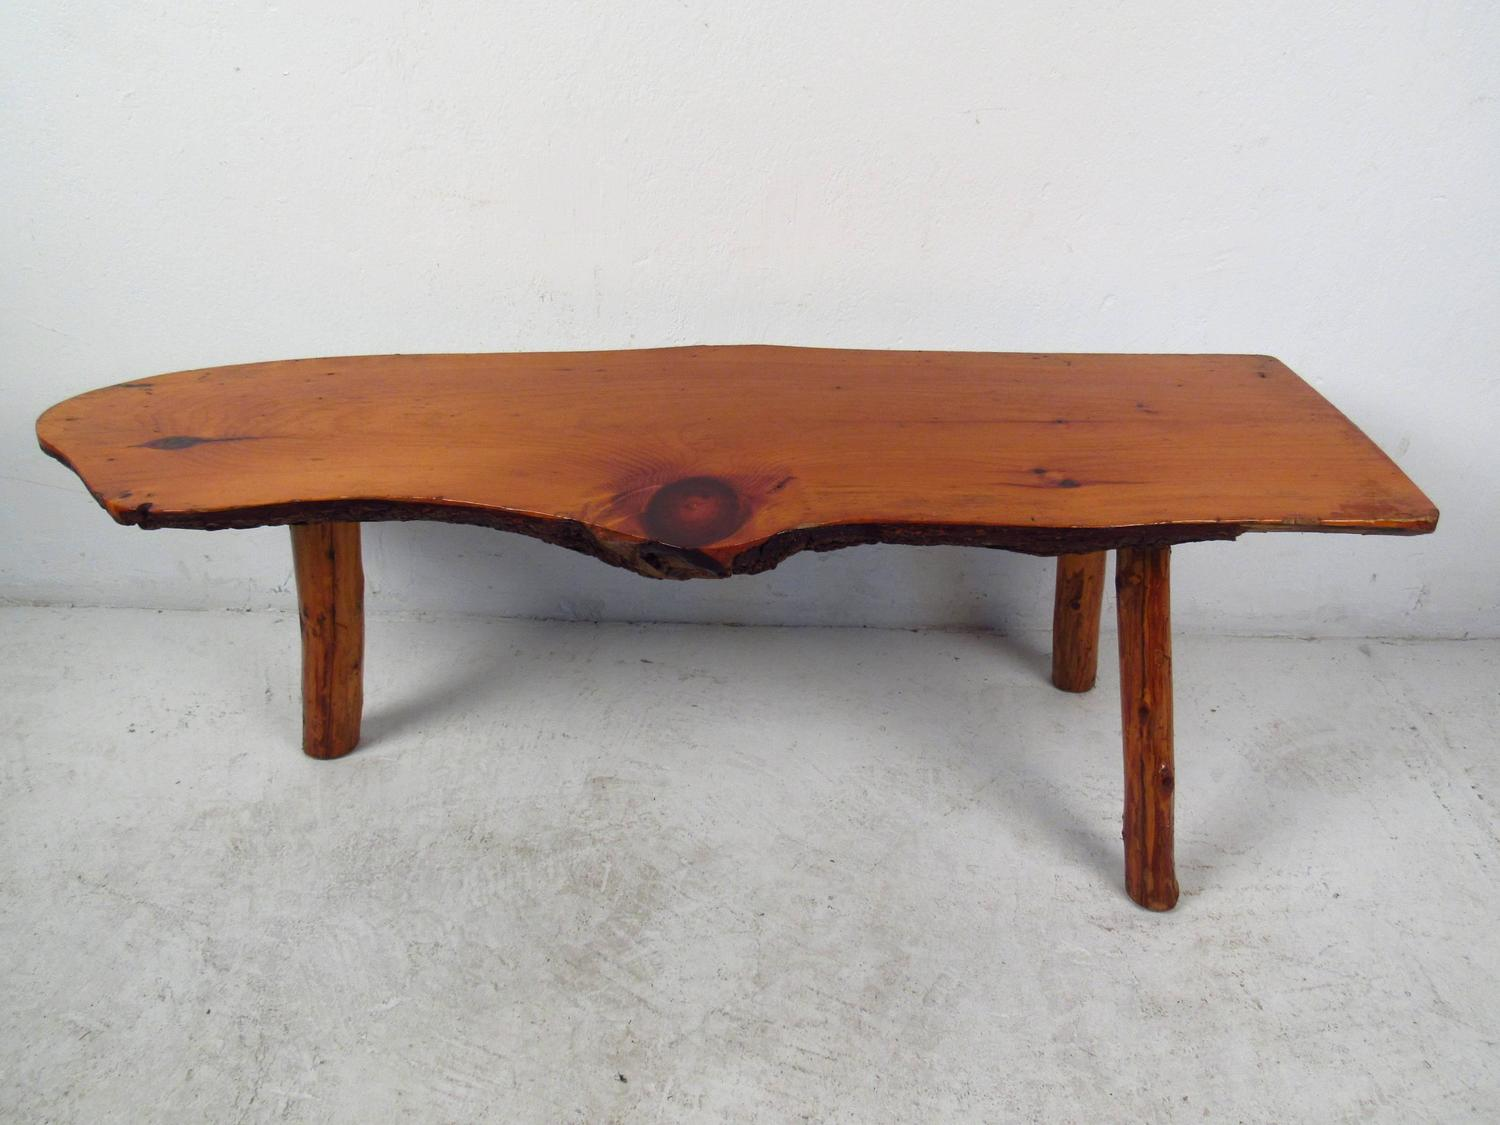 Tree Trunk Coffee Table For Sale Vintage Rustic Tree Trunk Coffee Table For Sale At 1stdibs